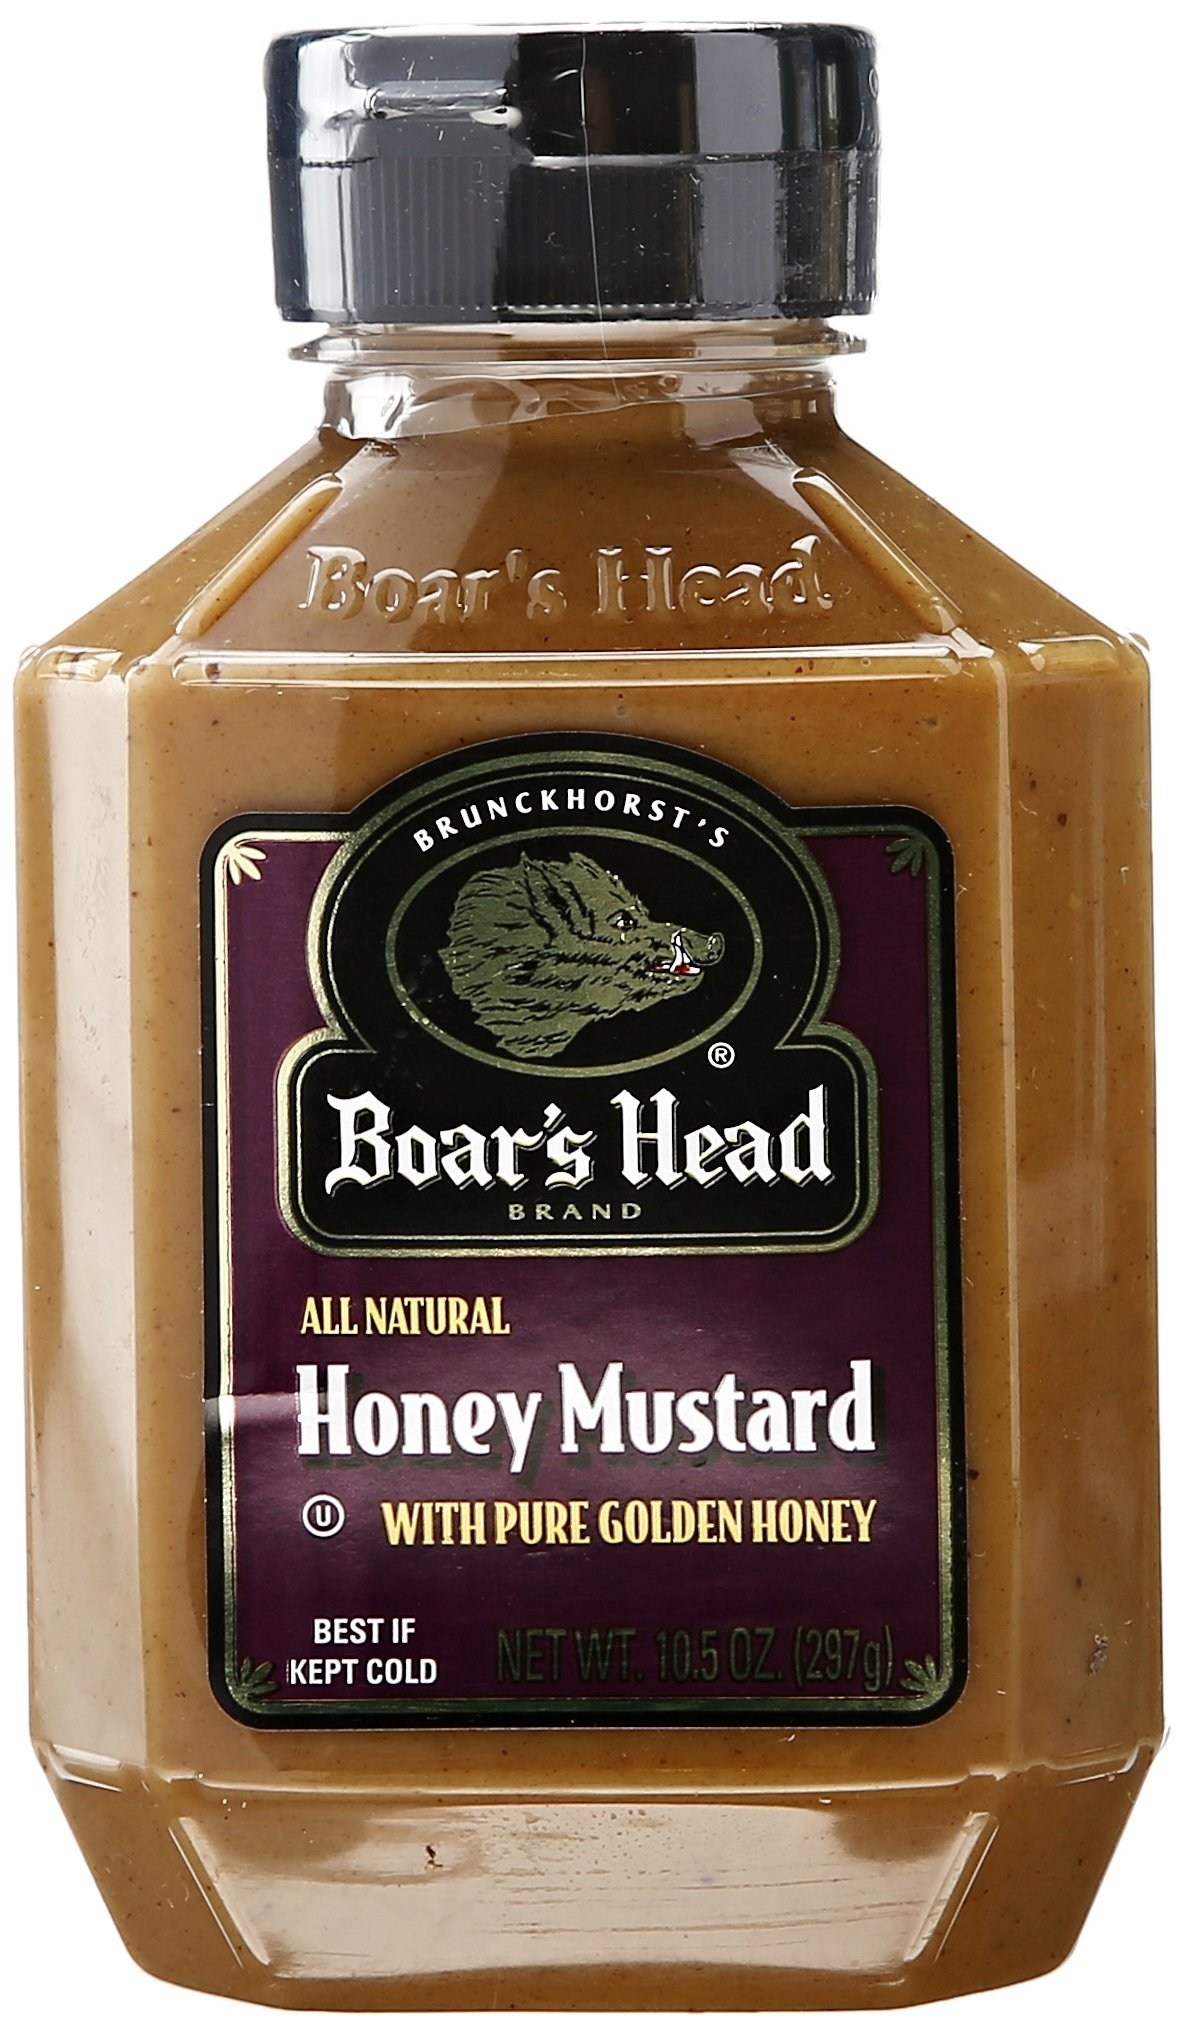 Boar's Head Honey Mustard, 10.5 oz by Boar's Head